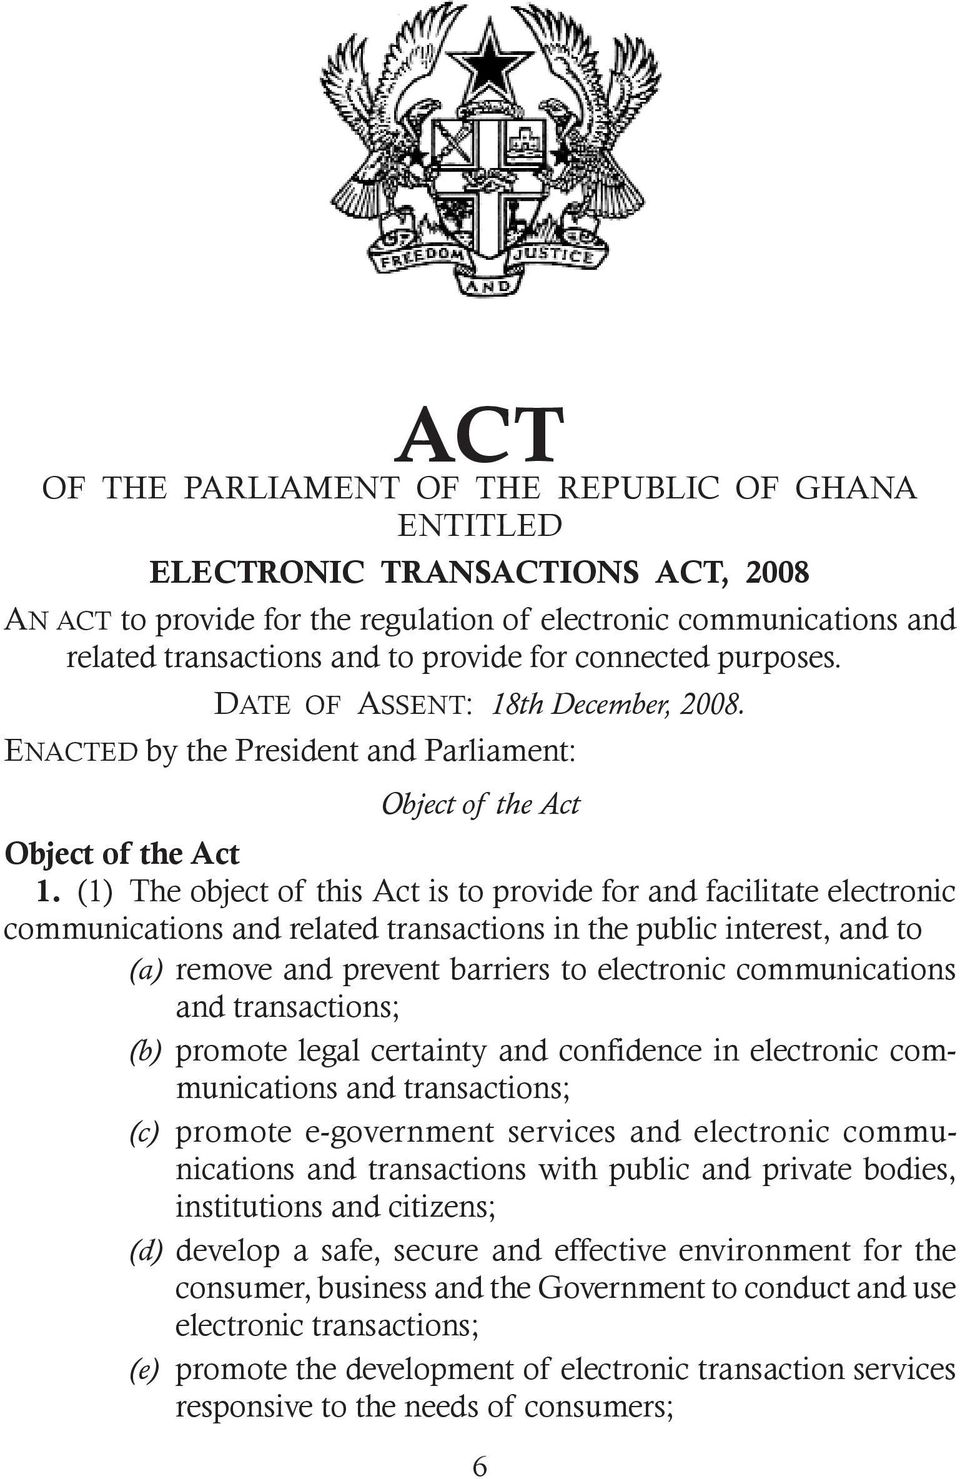 (1) The object of this Act is to provide for and facilitate electronic communications and related transactions in the public interest, and to (a) remove and prevent barriers to electronic